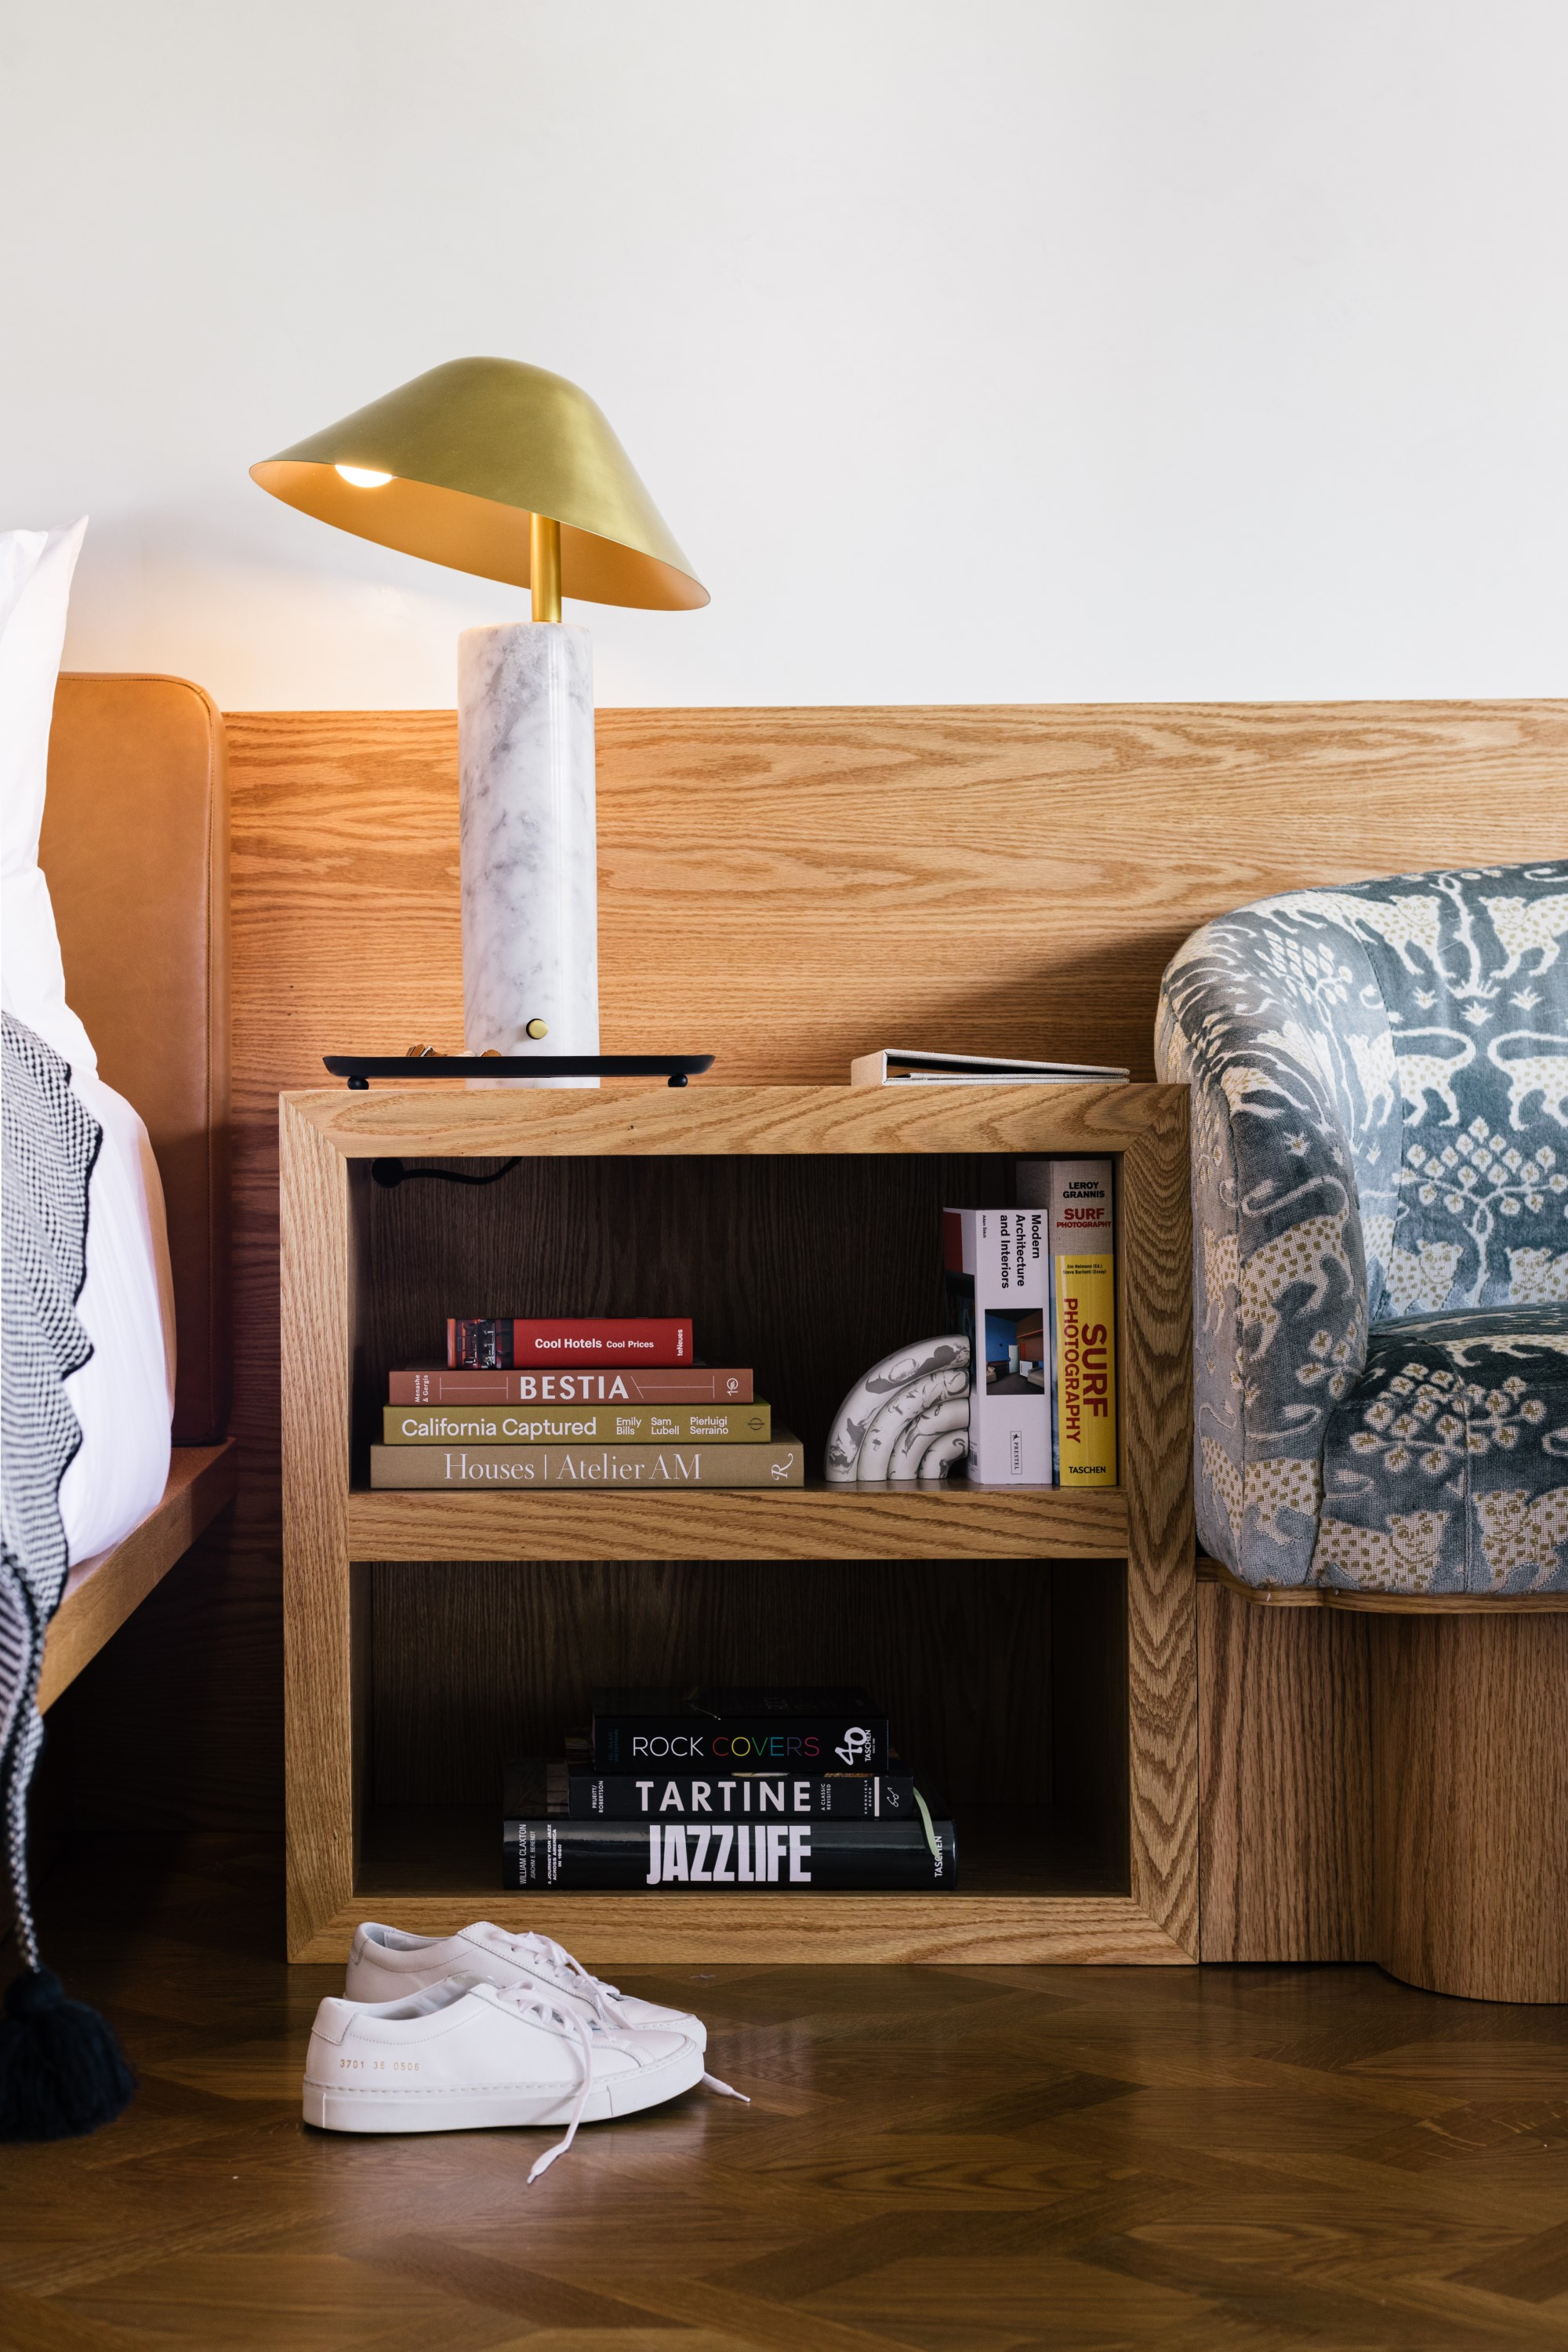 Bedside table with books and lamp